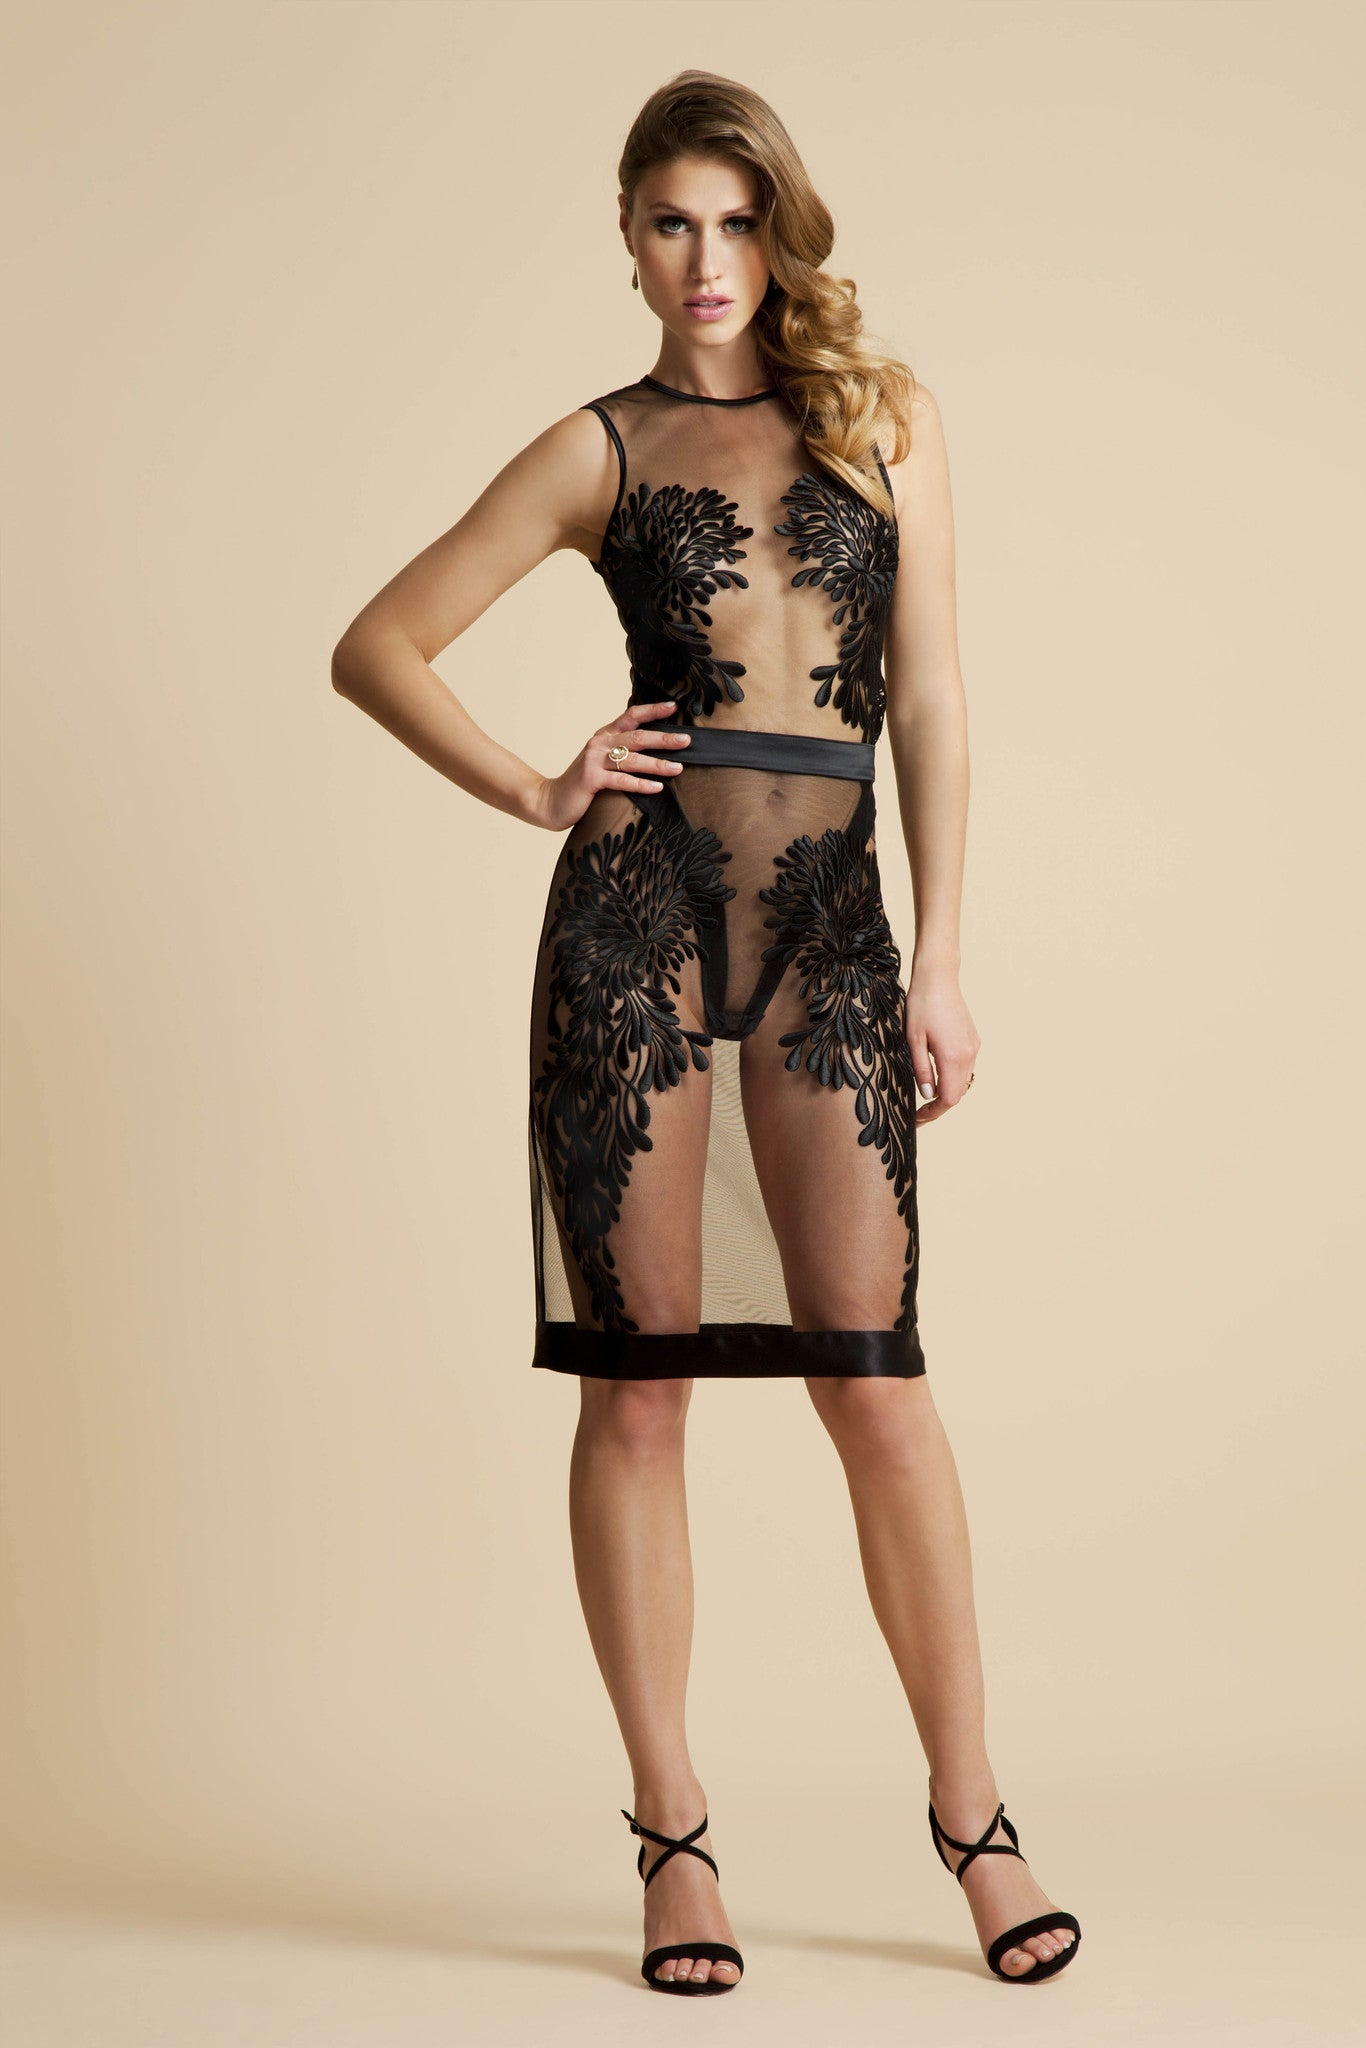 Gabriella sheer embroidery body worn with Gabriella Slip skirt